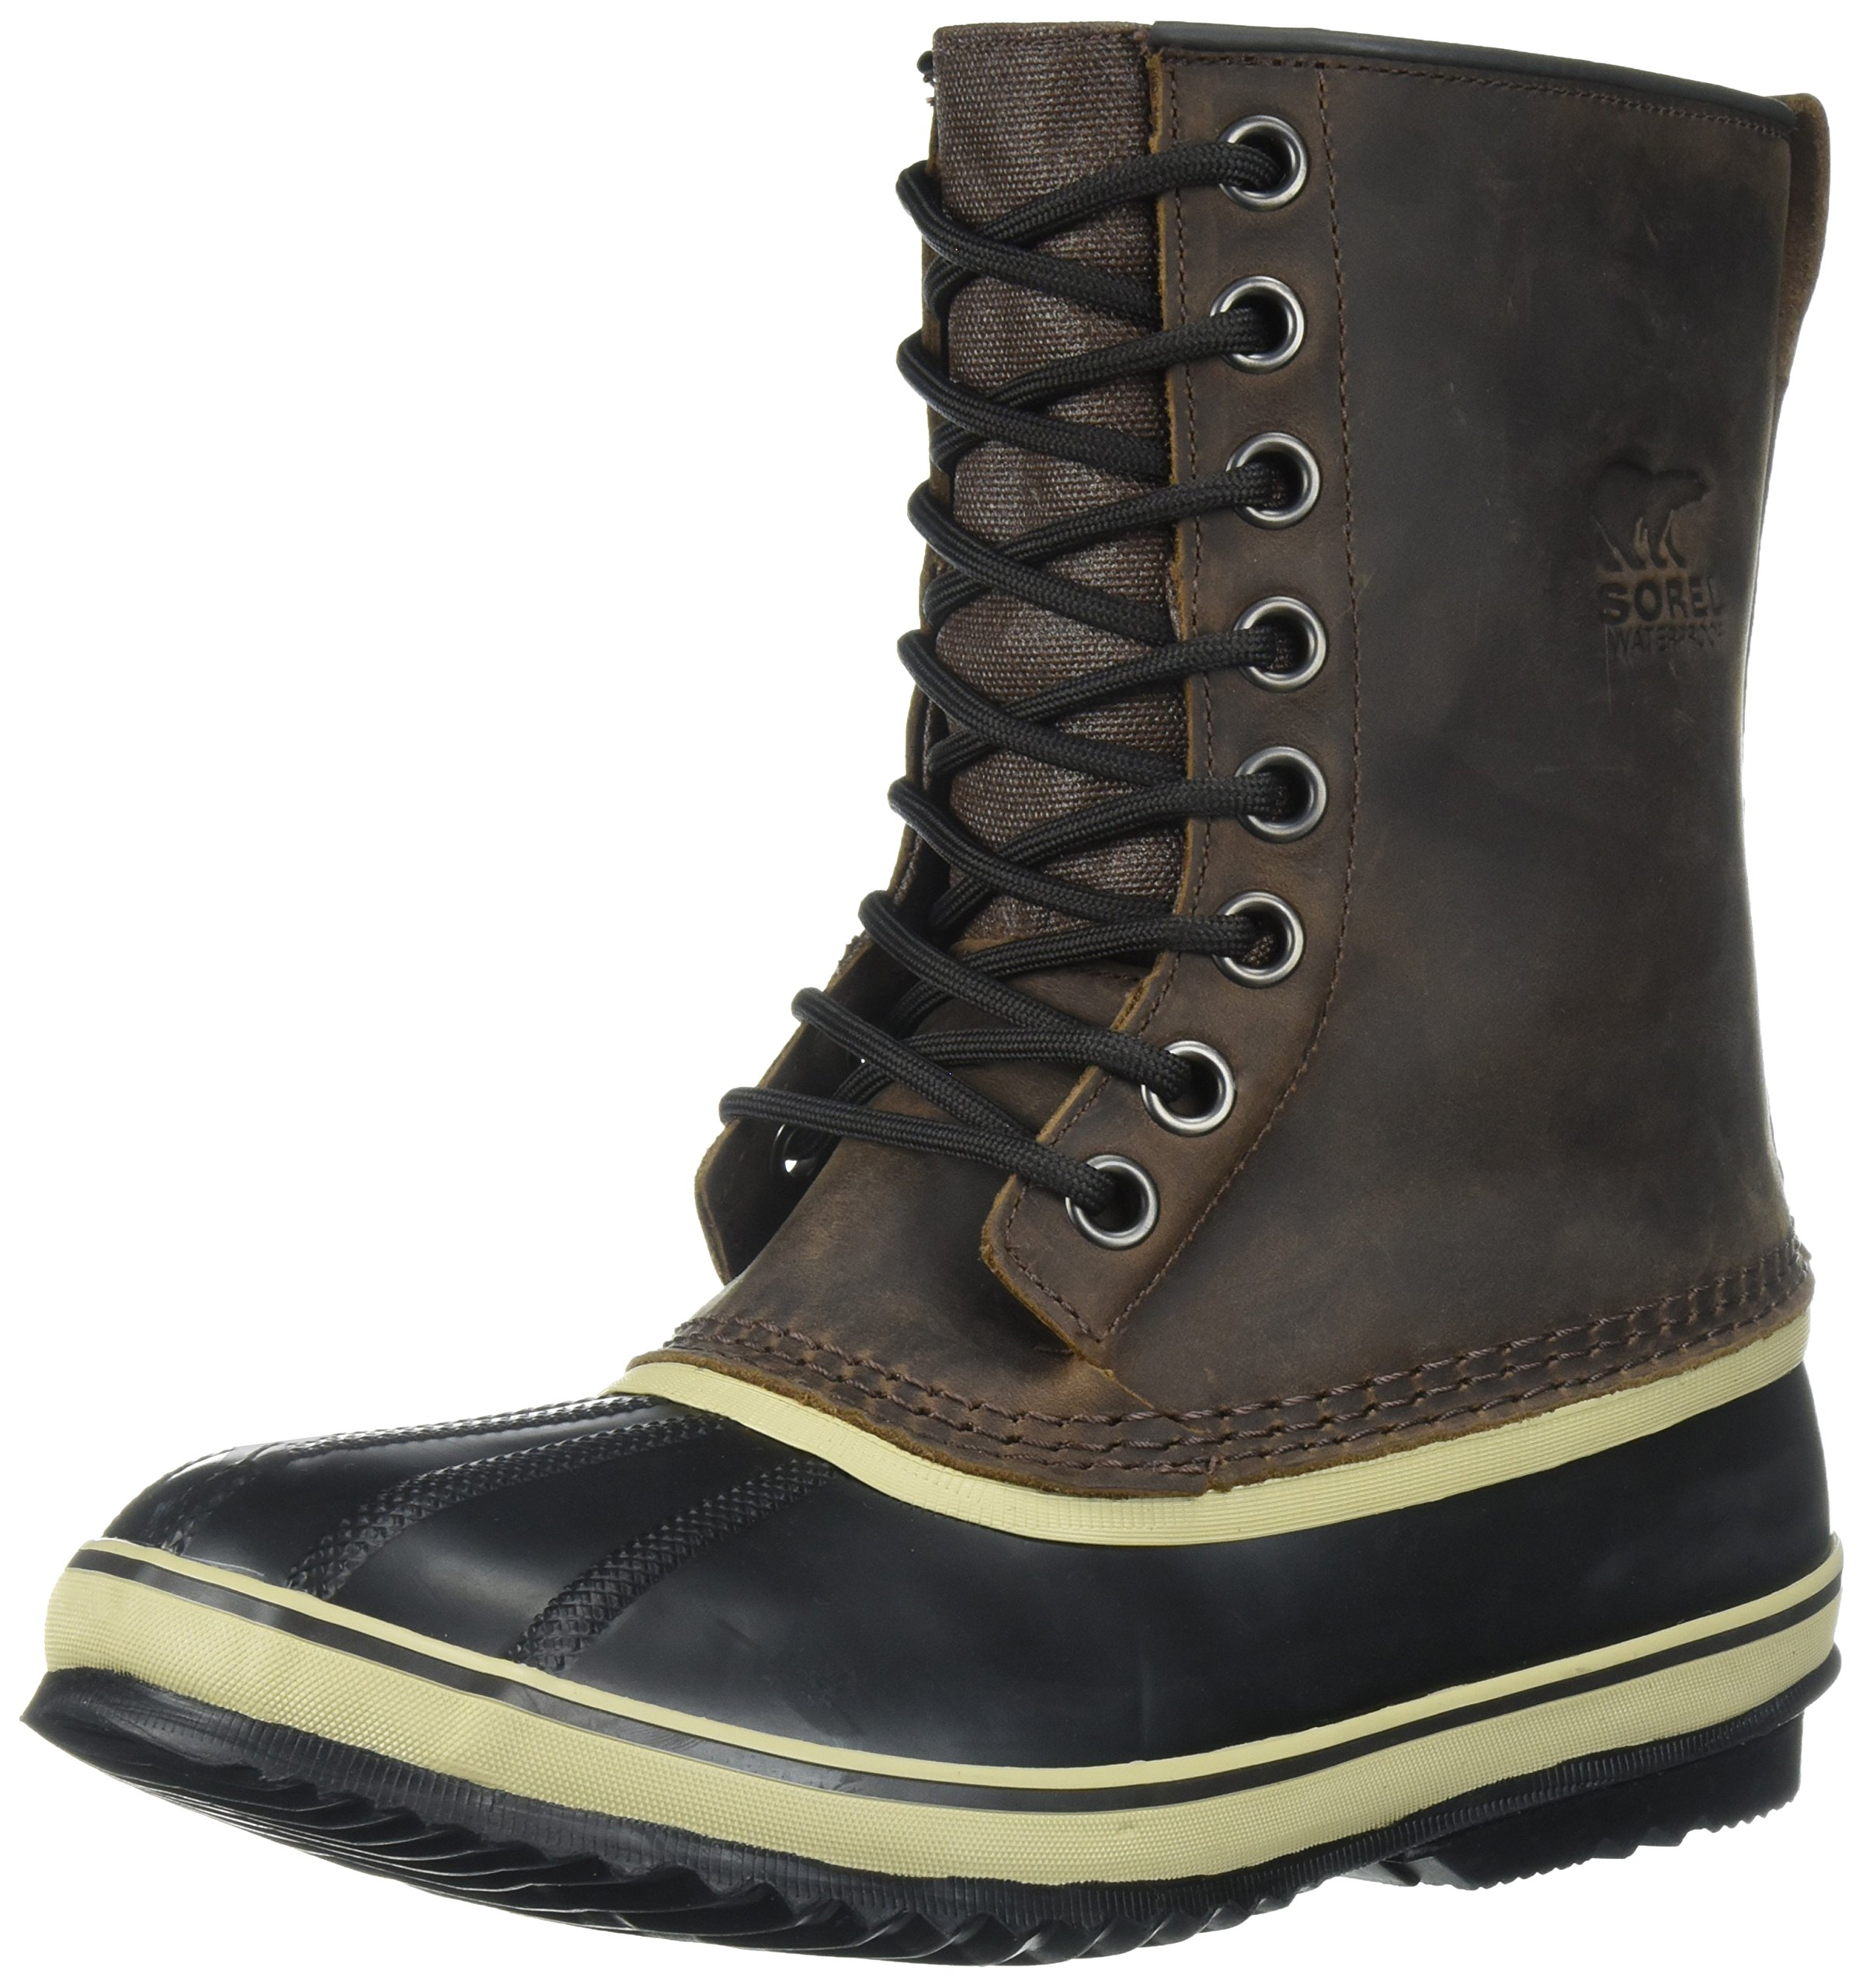 Sorel Men's 1964 Premium T Snow Boot, Tobacco, 11.5 D US